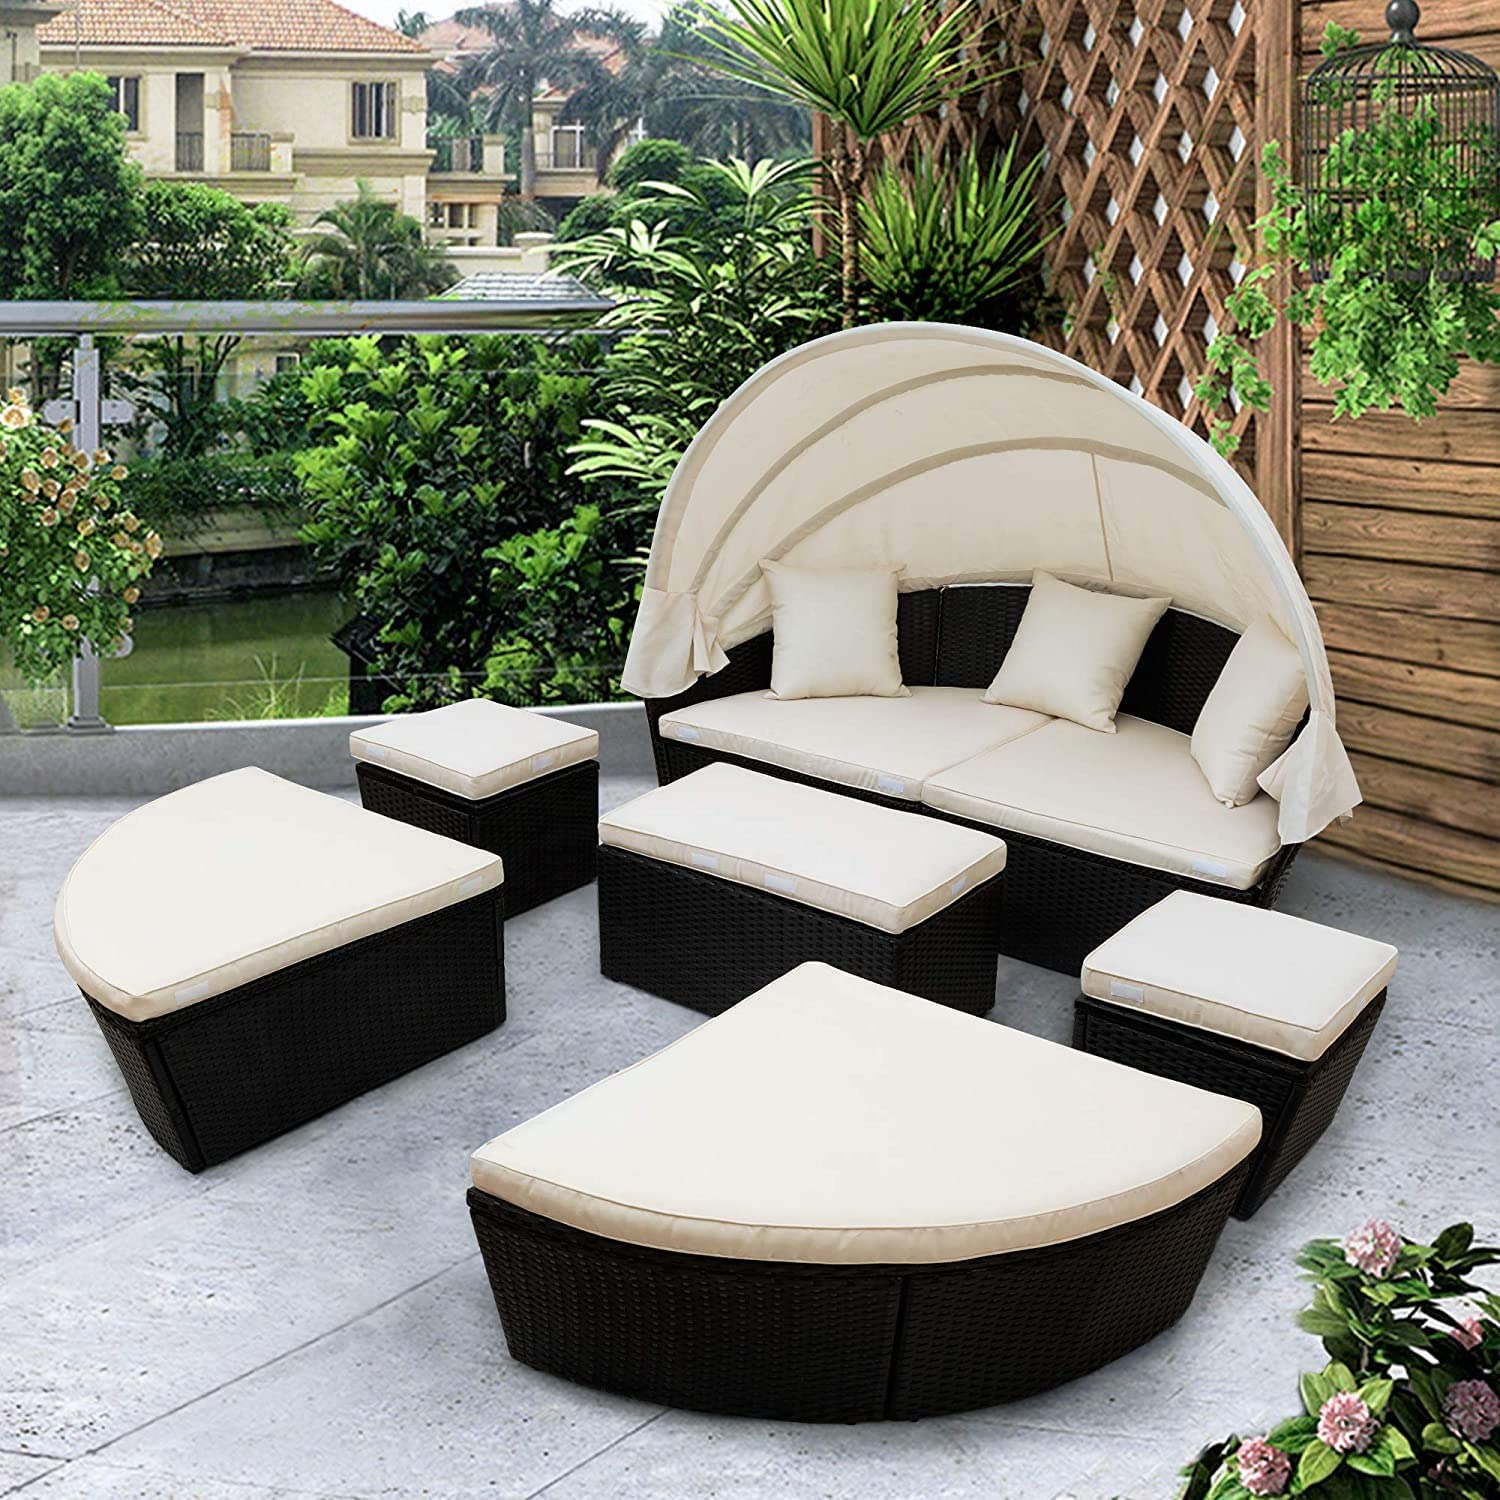 Lucakuins Outdoor Sectional Sofa Set Round Daybed Patio Wicker Furniture Clamshell Seating Outdoor Rattan Sunbed with Retractable Canopy Washable Cushions Lawn Pool Garden Seating (US Warehouse)